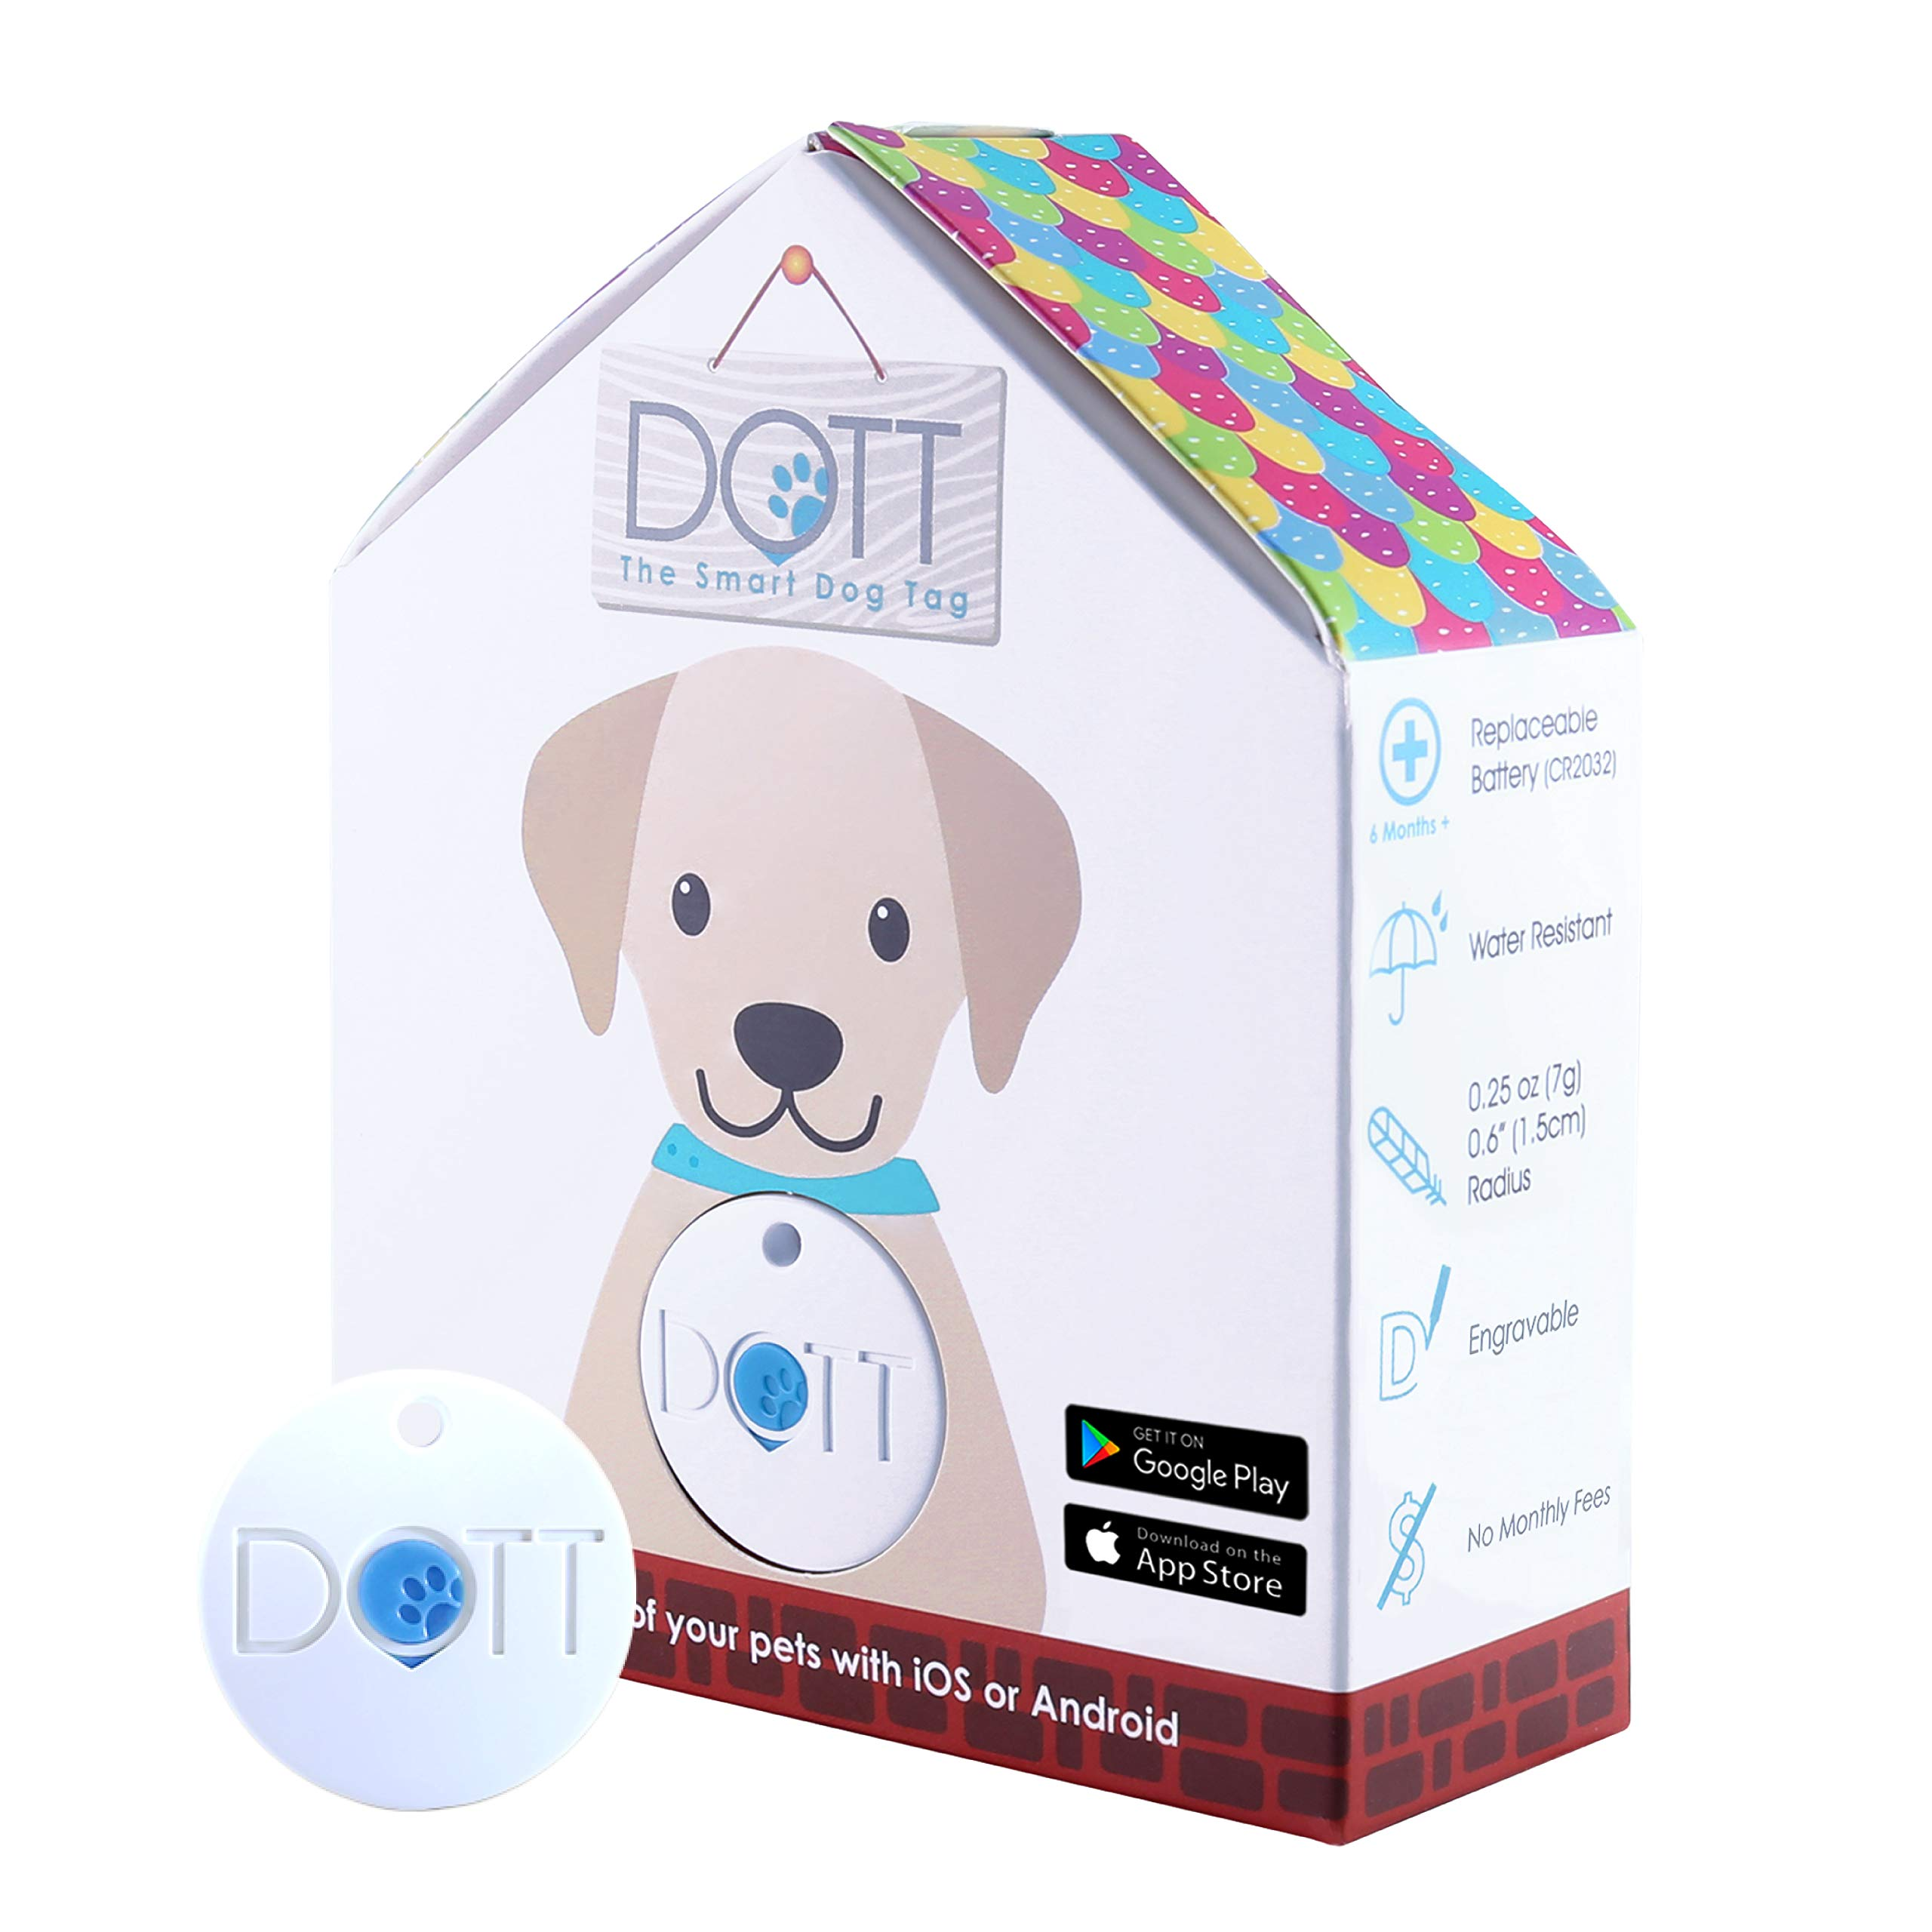 DOTT The Smart Dog Tag - Bluetooth Tracker for Dogs and Cats, Pet Finder, Virtual Leash, No Subscription (NOT A GPS Tracker) by DOTT